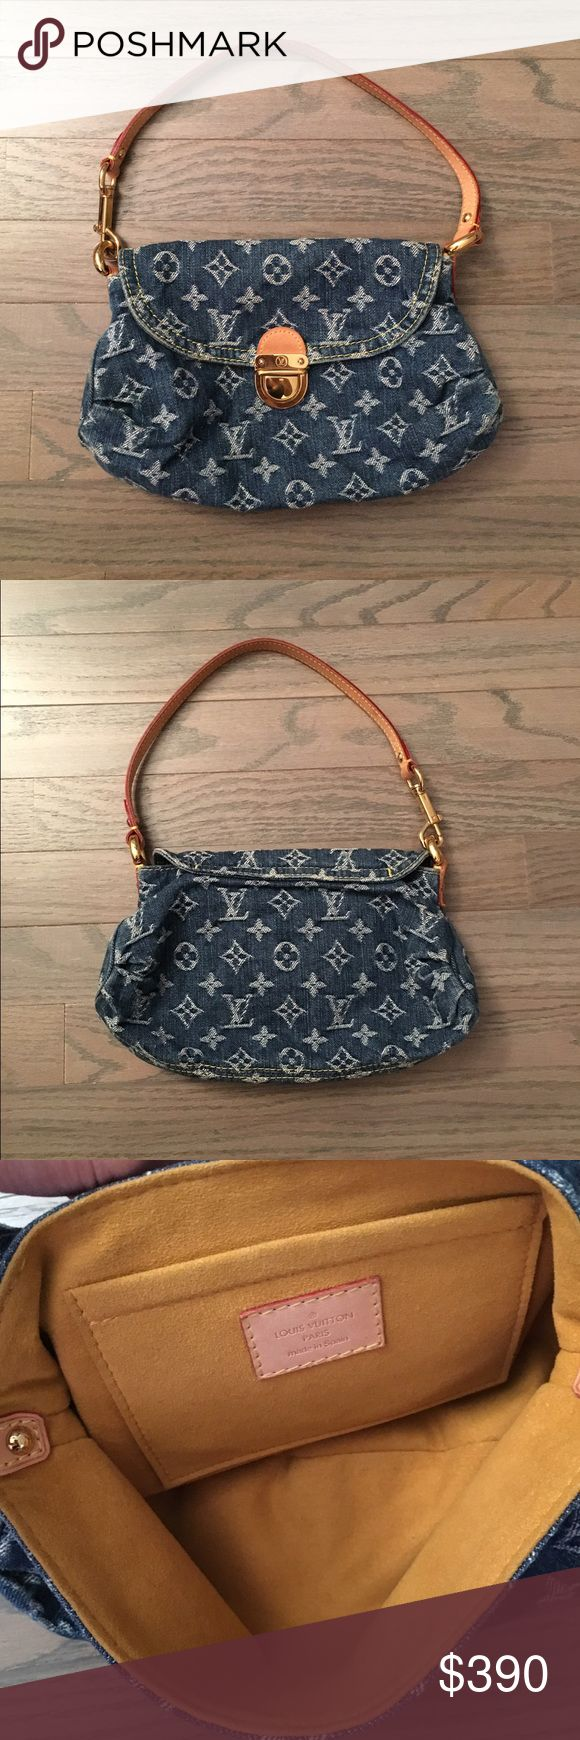 Louis Vuitton Denim Bag Authentic Louis Vuitton Small Denim Bag. Approximately 10x6 inches. Strap drop is about 7.5 inches. Flap and push-lock closure. Used gently so in very good condition. Louis Vuitton Bags Shoulder Bags